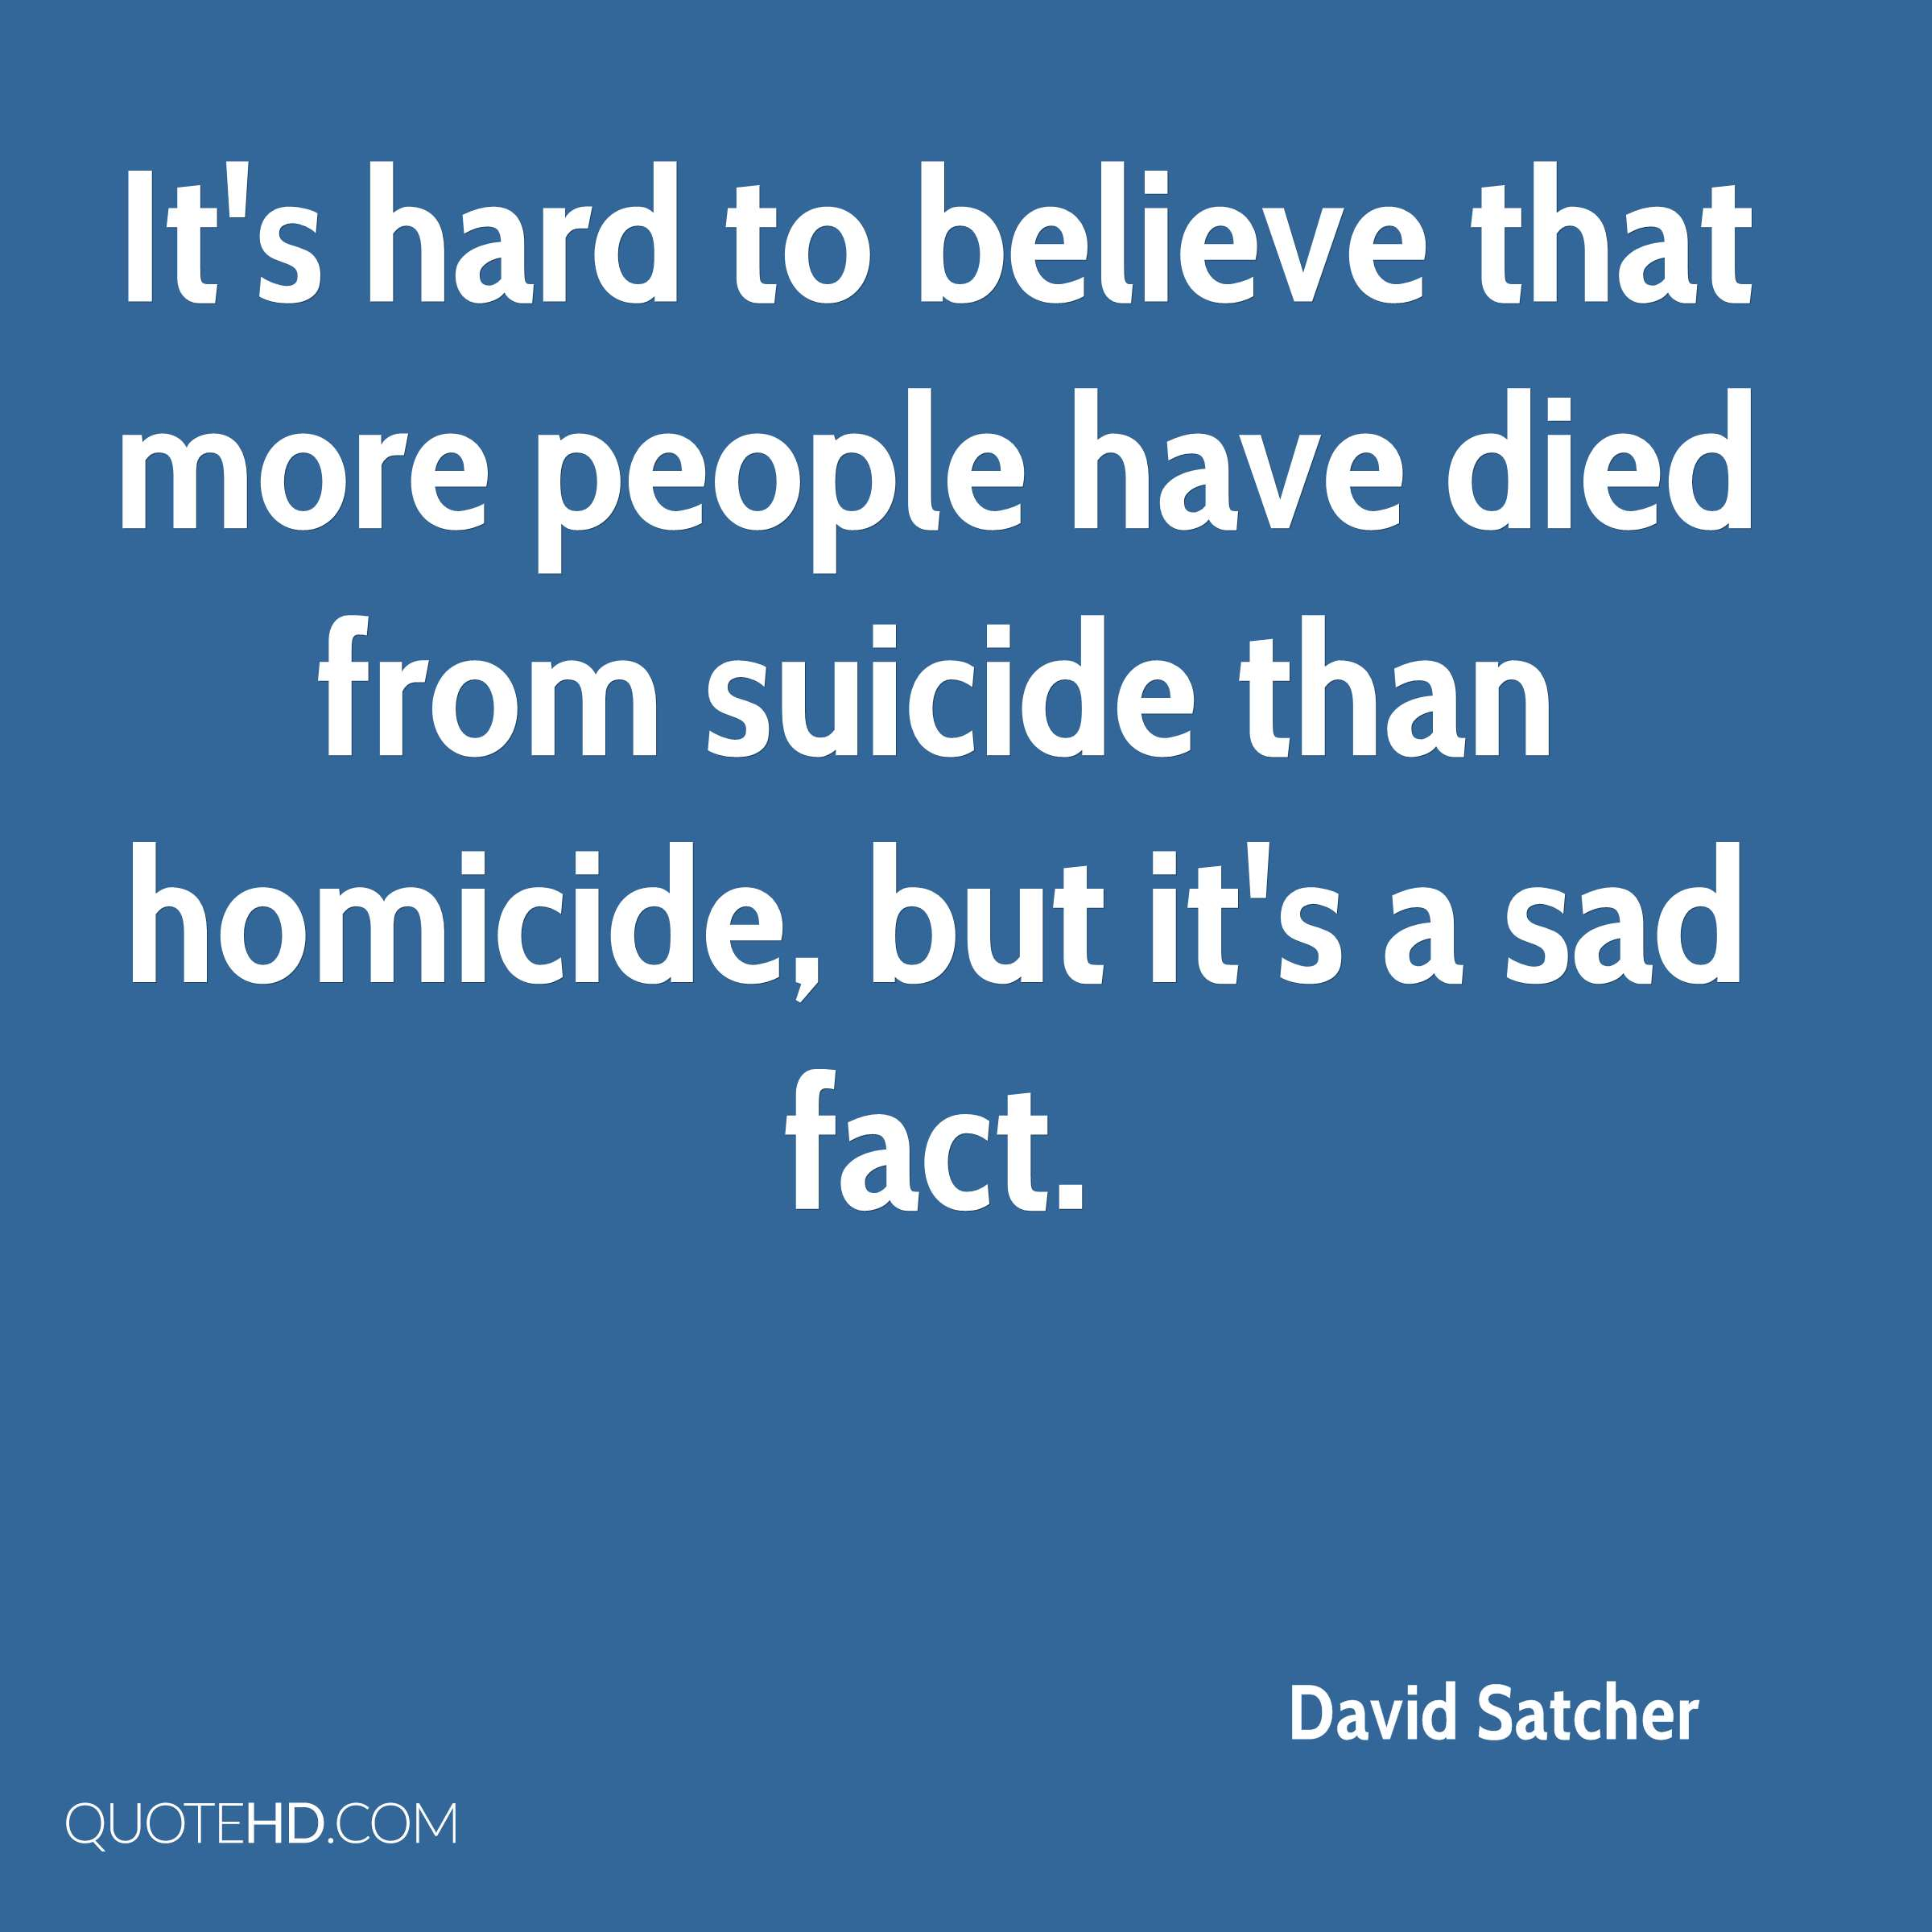 It's hard to believe that more people have died from suicide than homicide, but it's a sad fact.